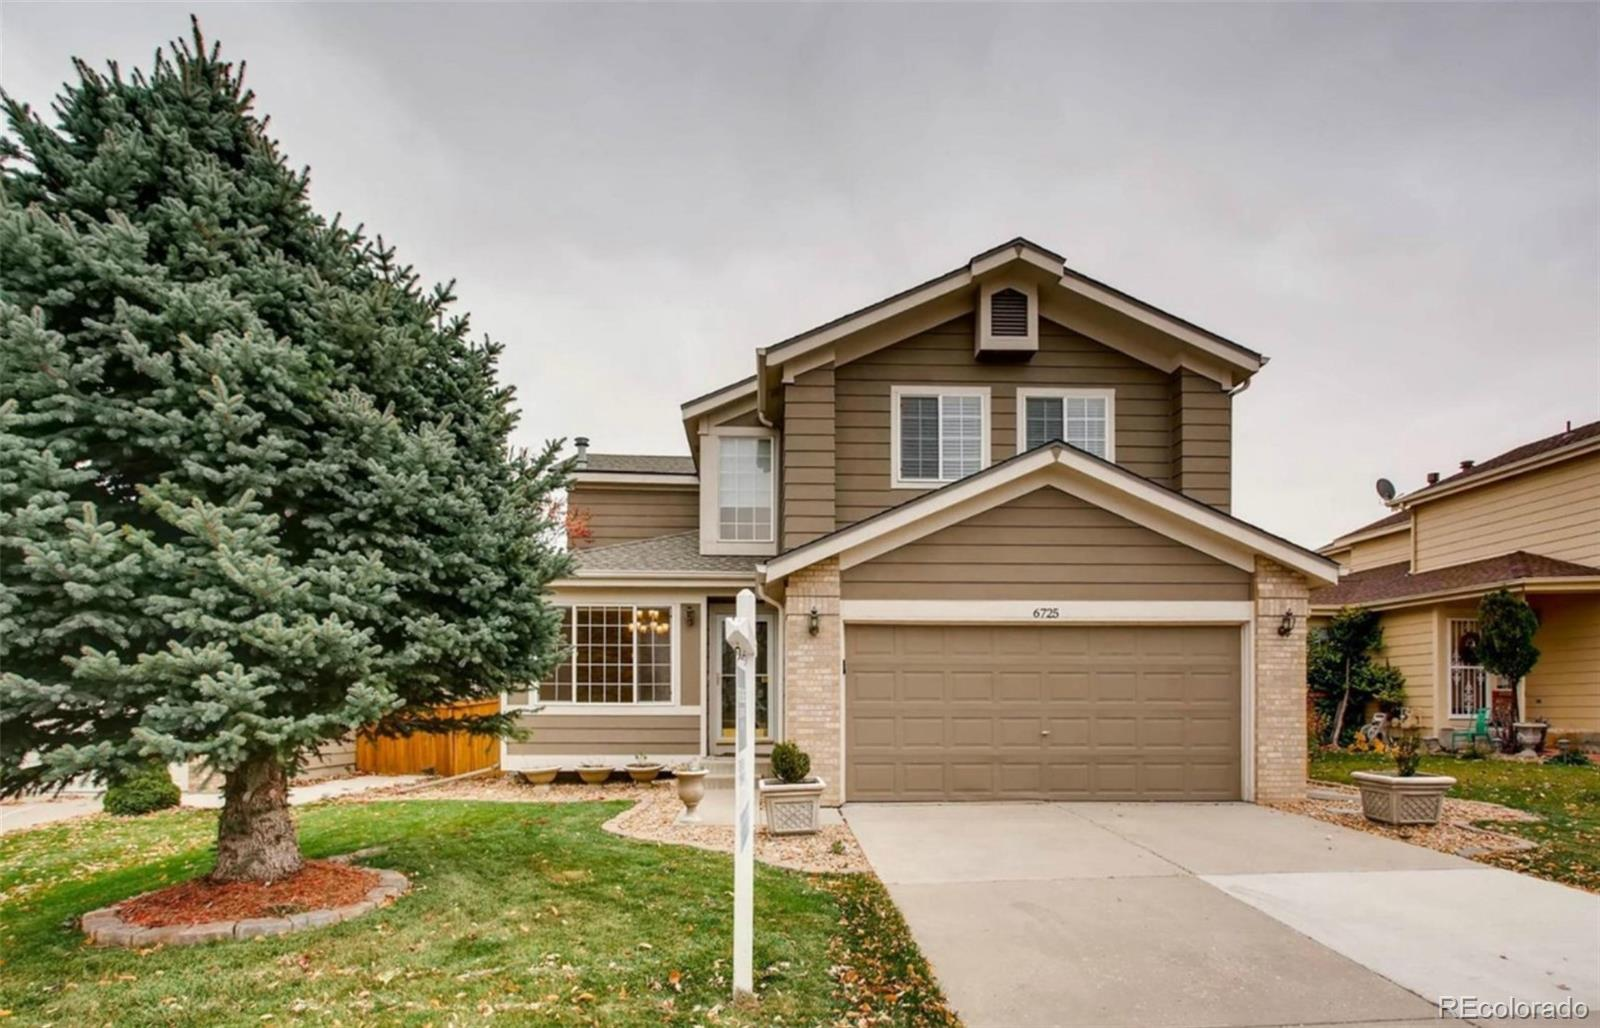 MLS# 2783819 - 1 - 6725 Lionshead Parkway, Littleton, CO 80124